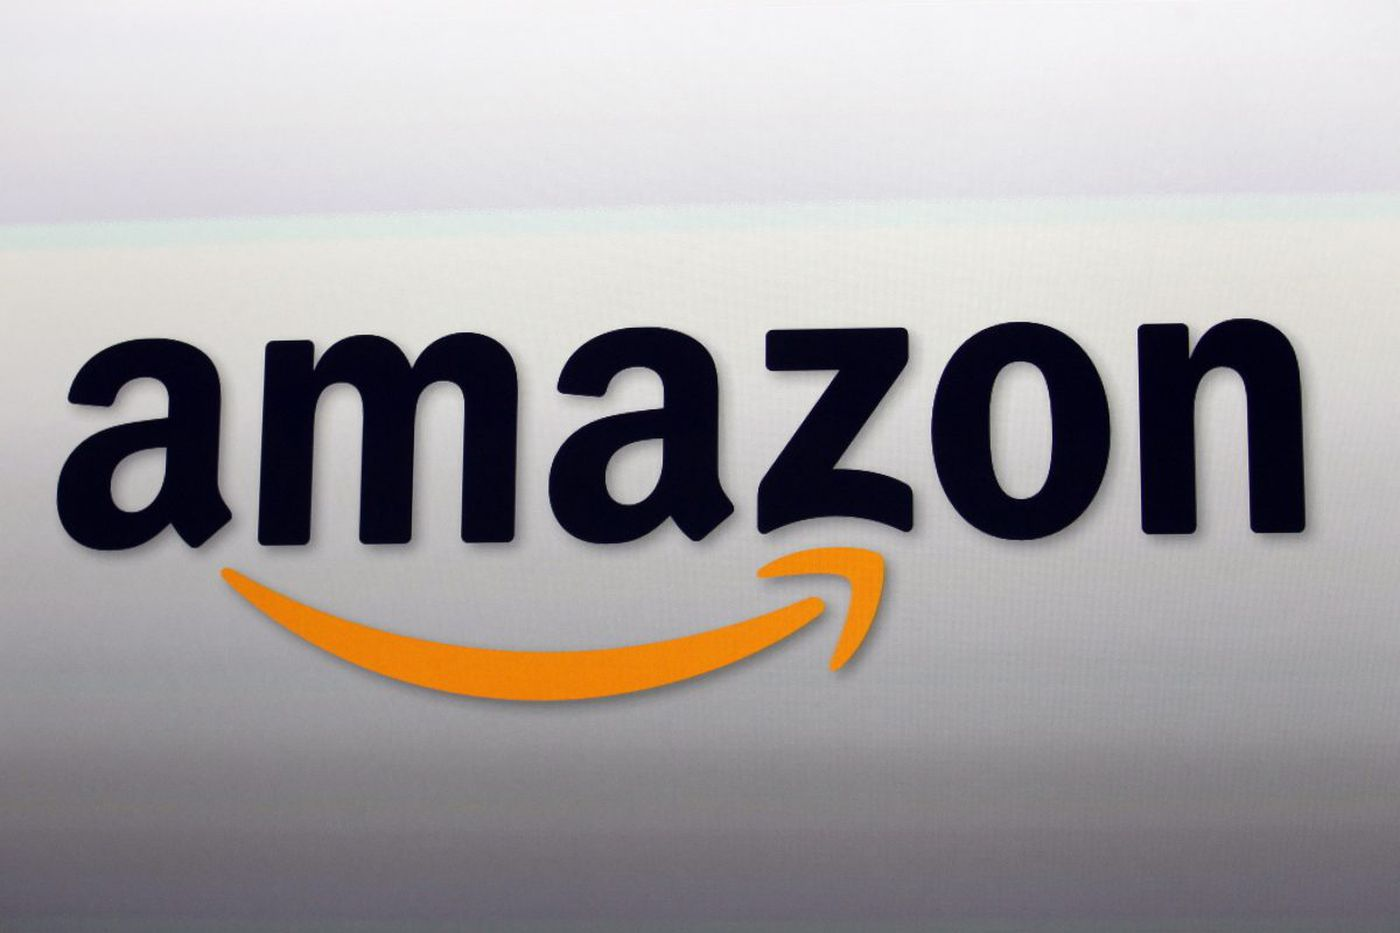 Amazon may split HQ2 between two cities, WSJ reports